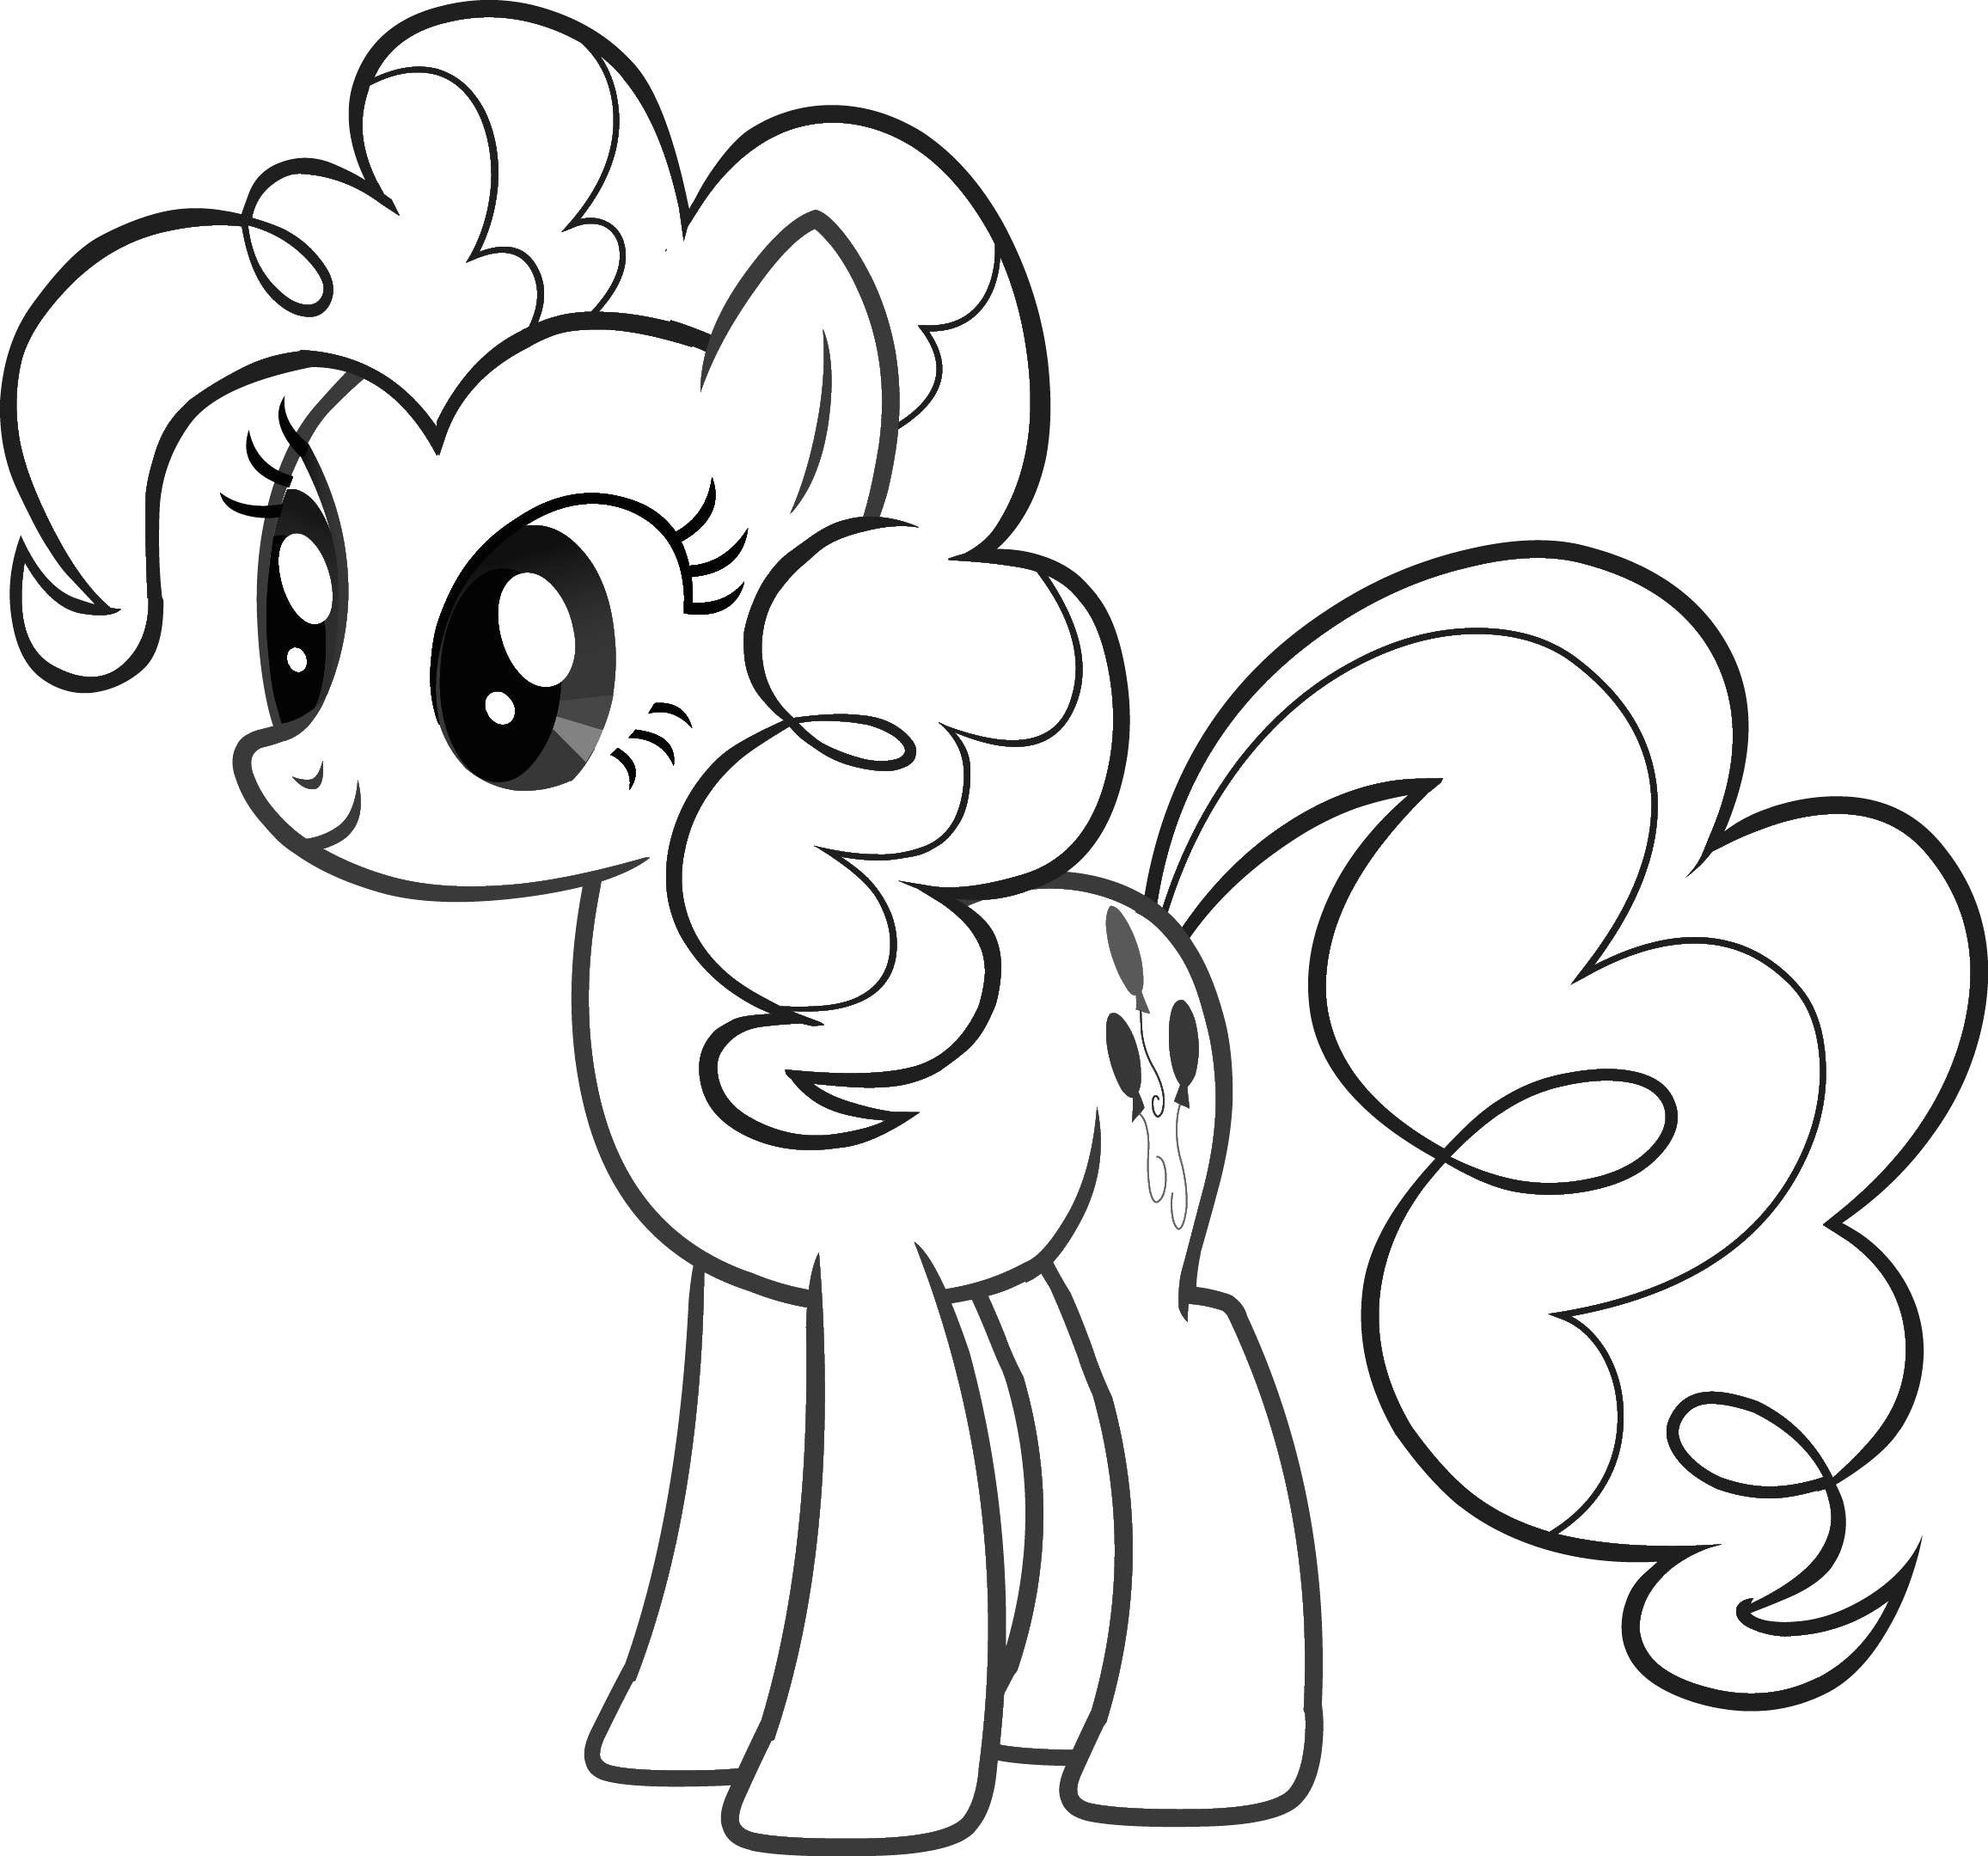 My Little Pony Friendship is Magic Coloring Pages My Little Pony Colouring Sheets Pinkie Pie My Little